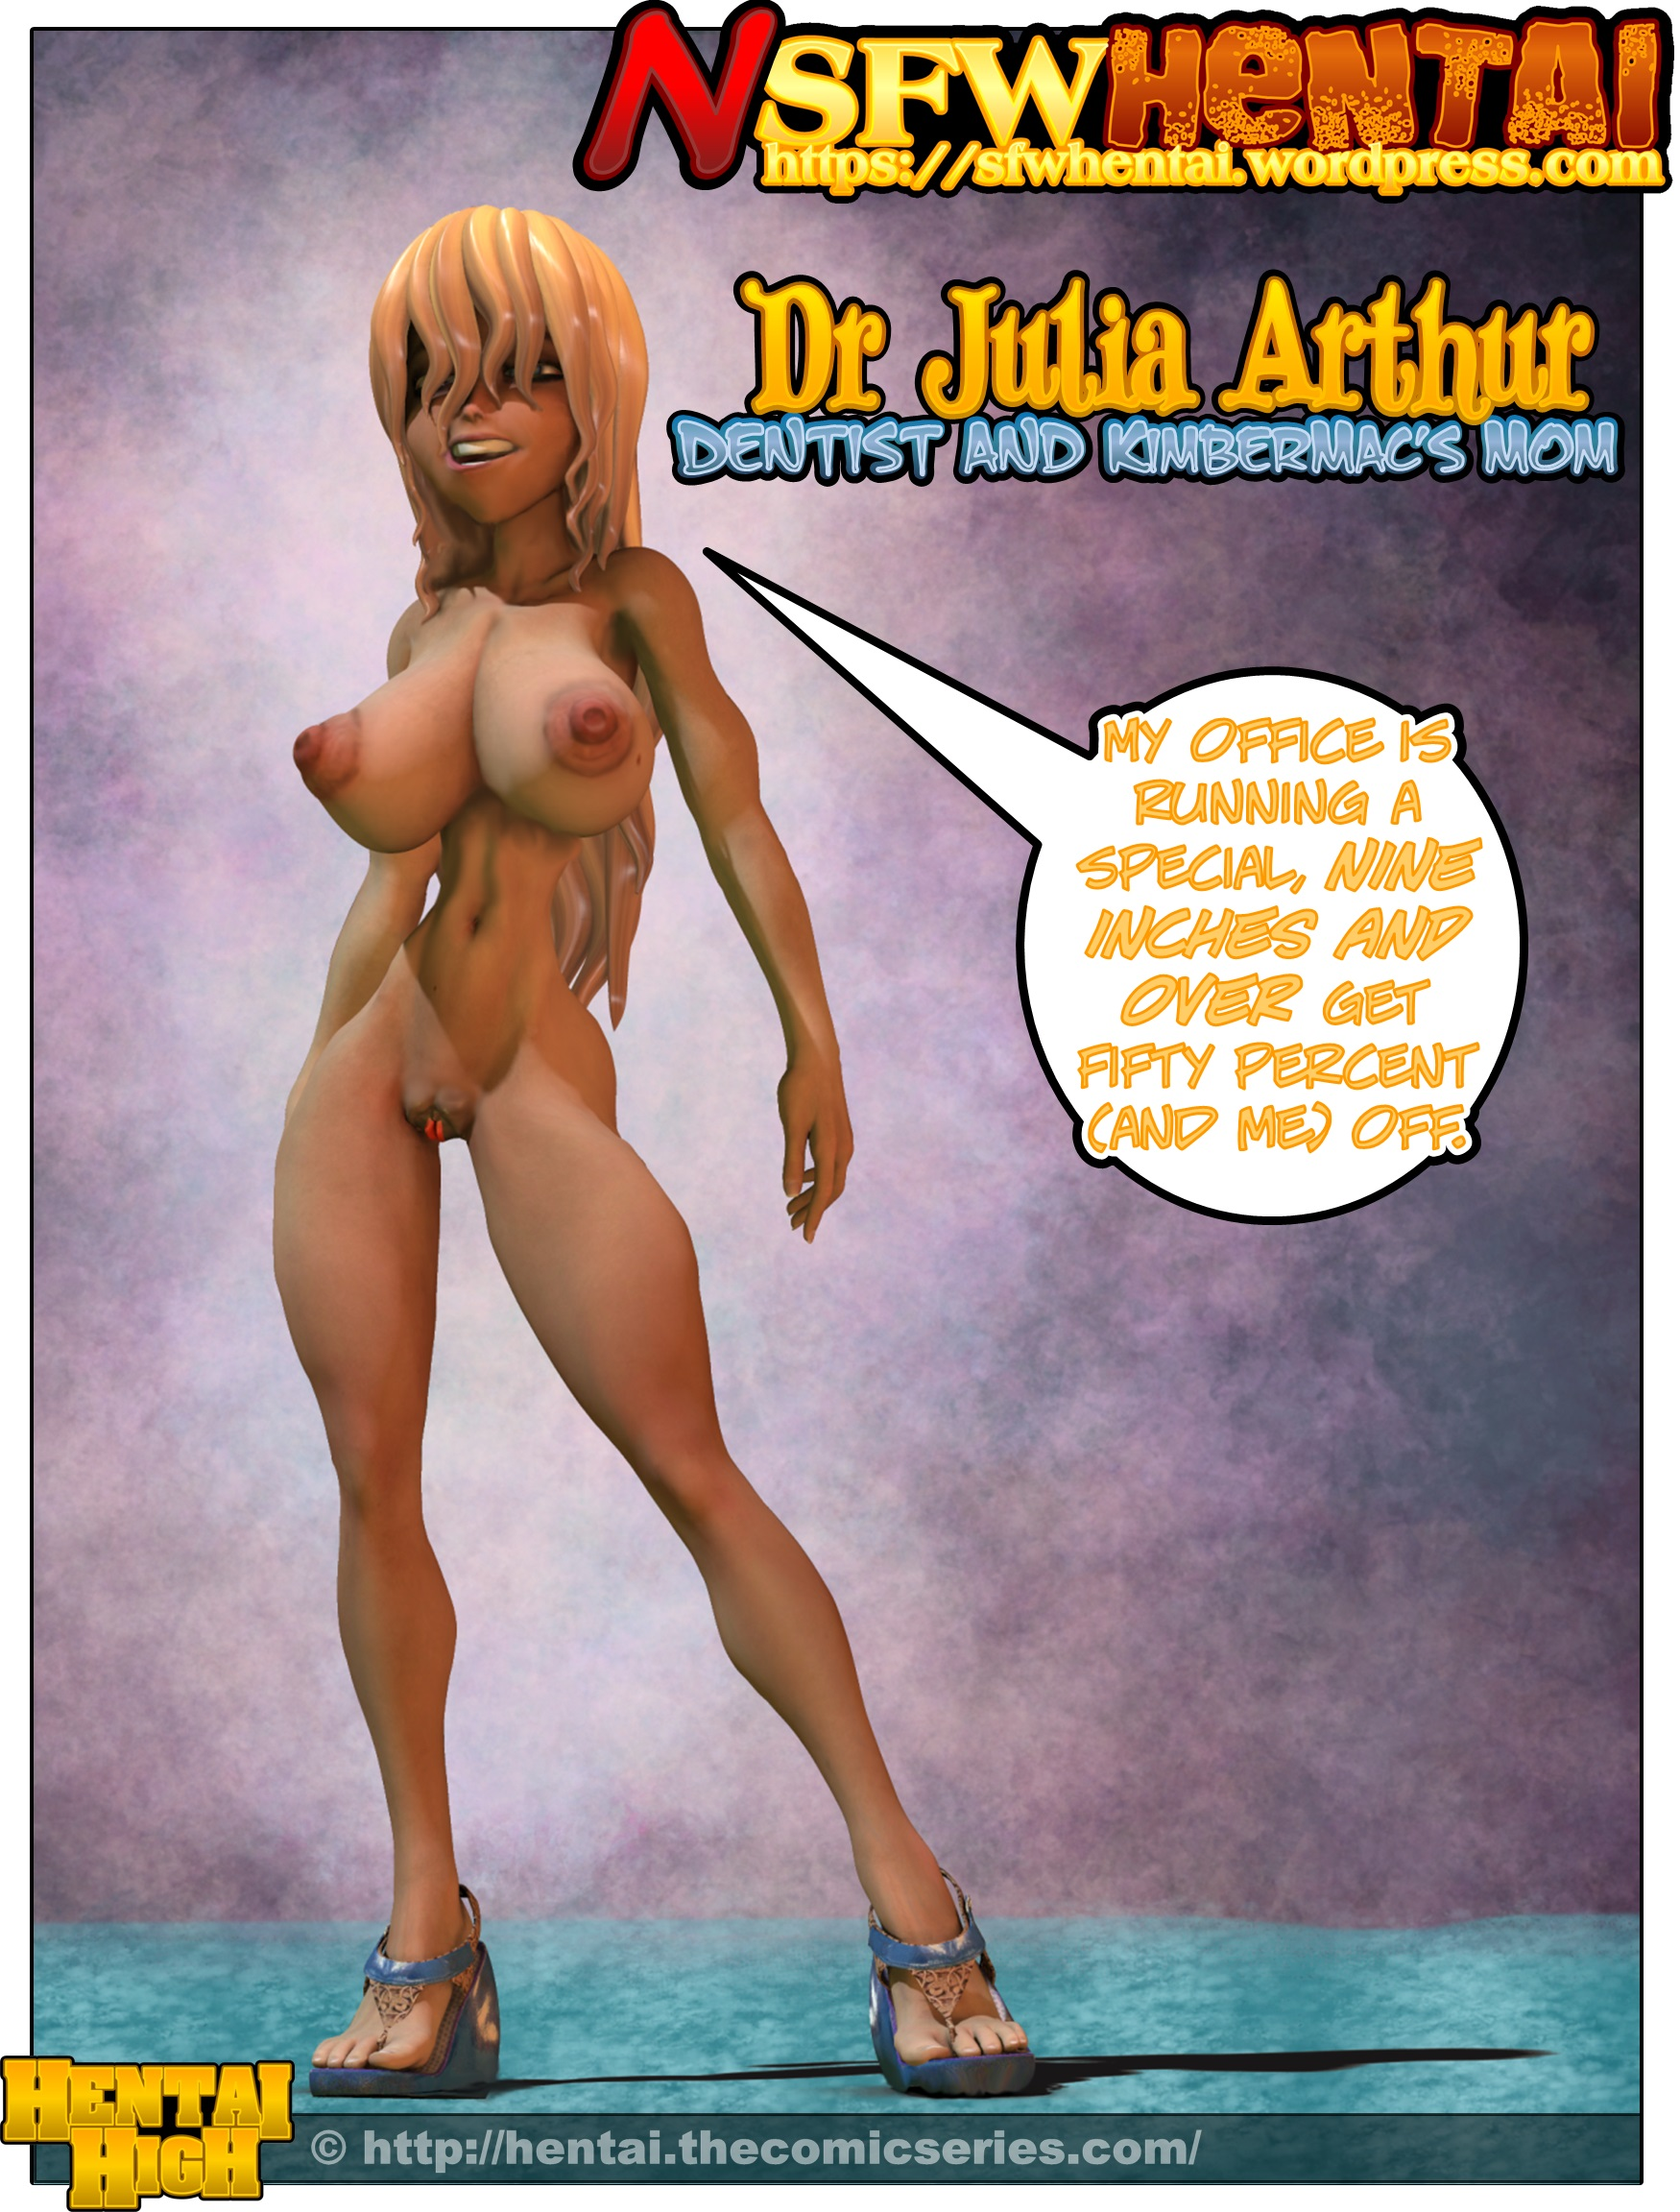 NSFW big tits hentai art of Hentai High big breasted MILF dentist Julia Arthur.